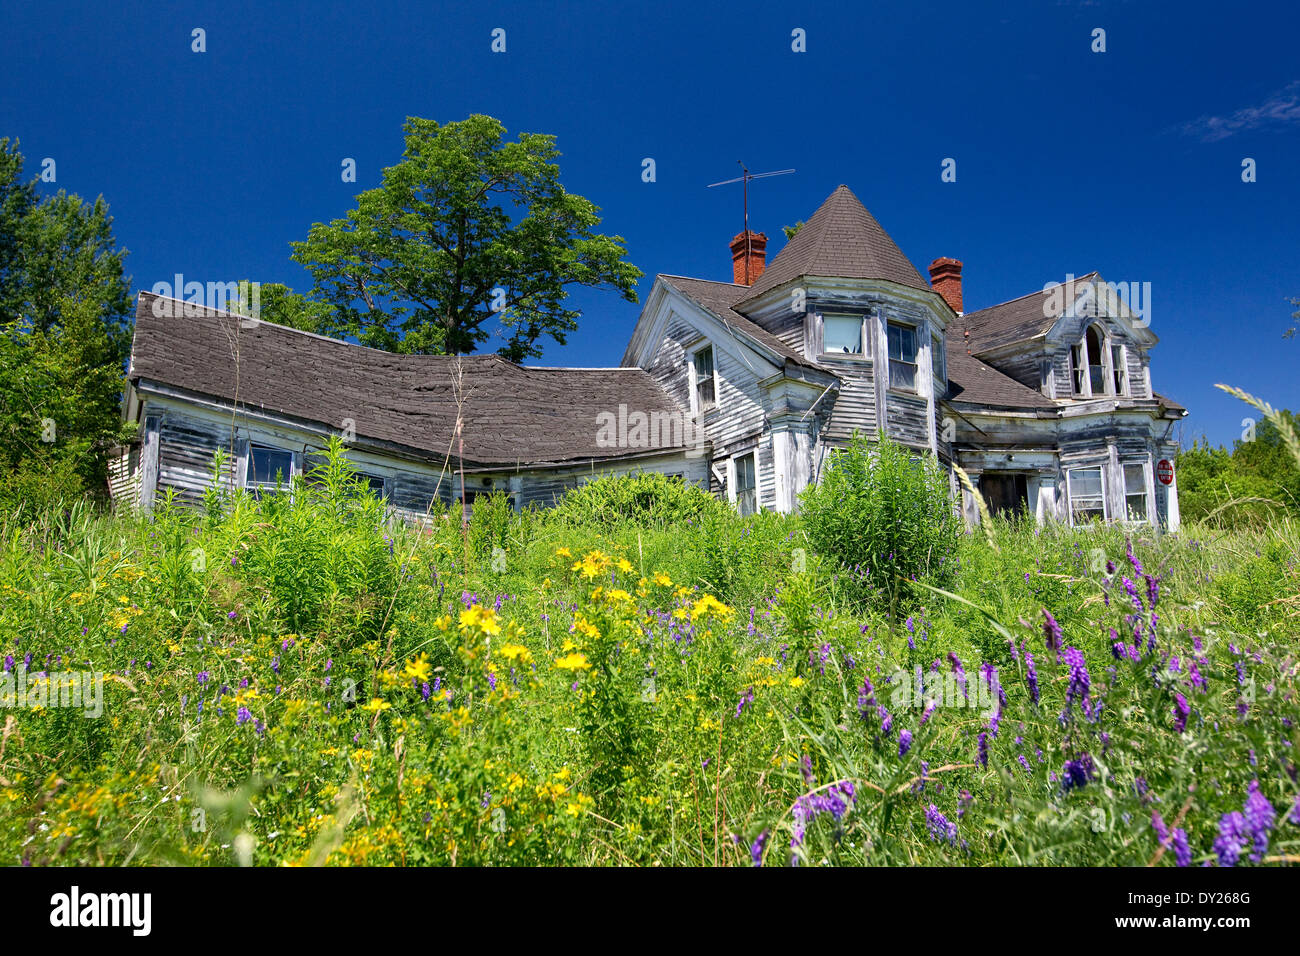 Abandoned, dilapidated old house from a bygone era, Maine, USA - Stock Image